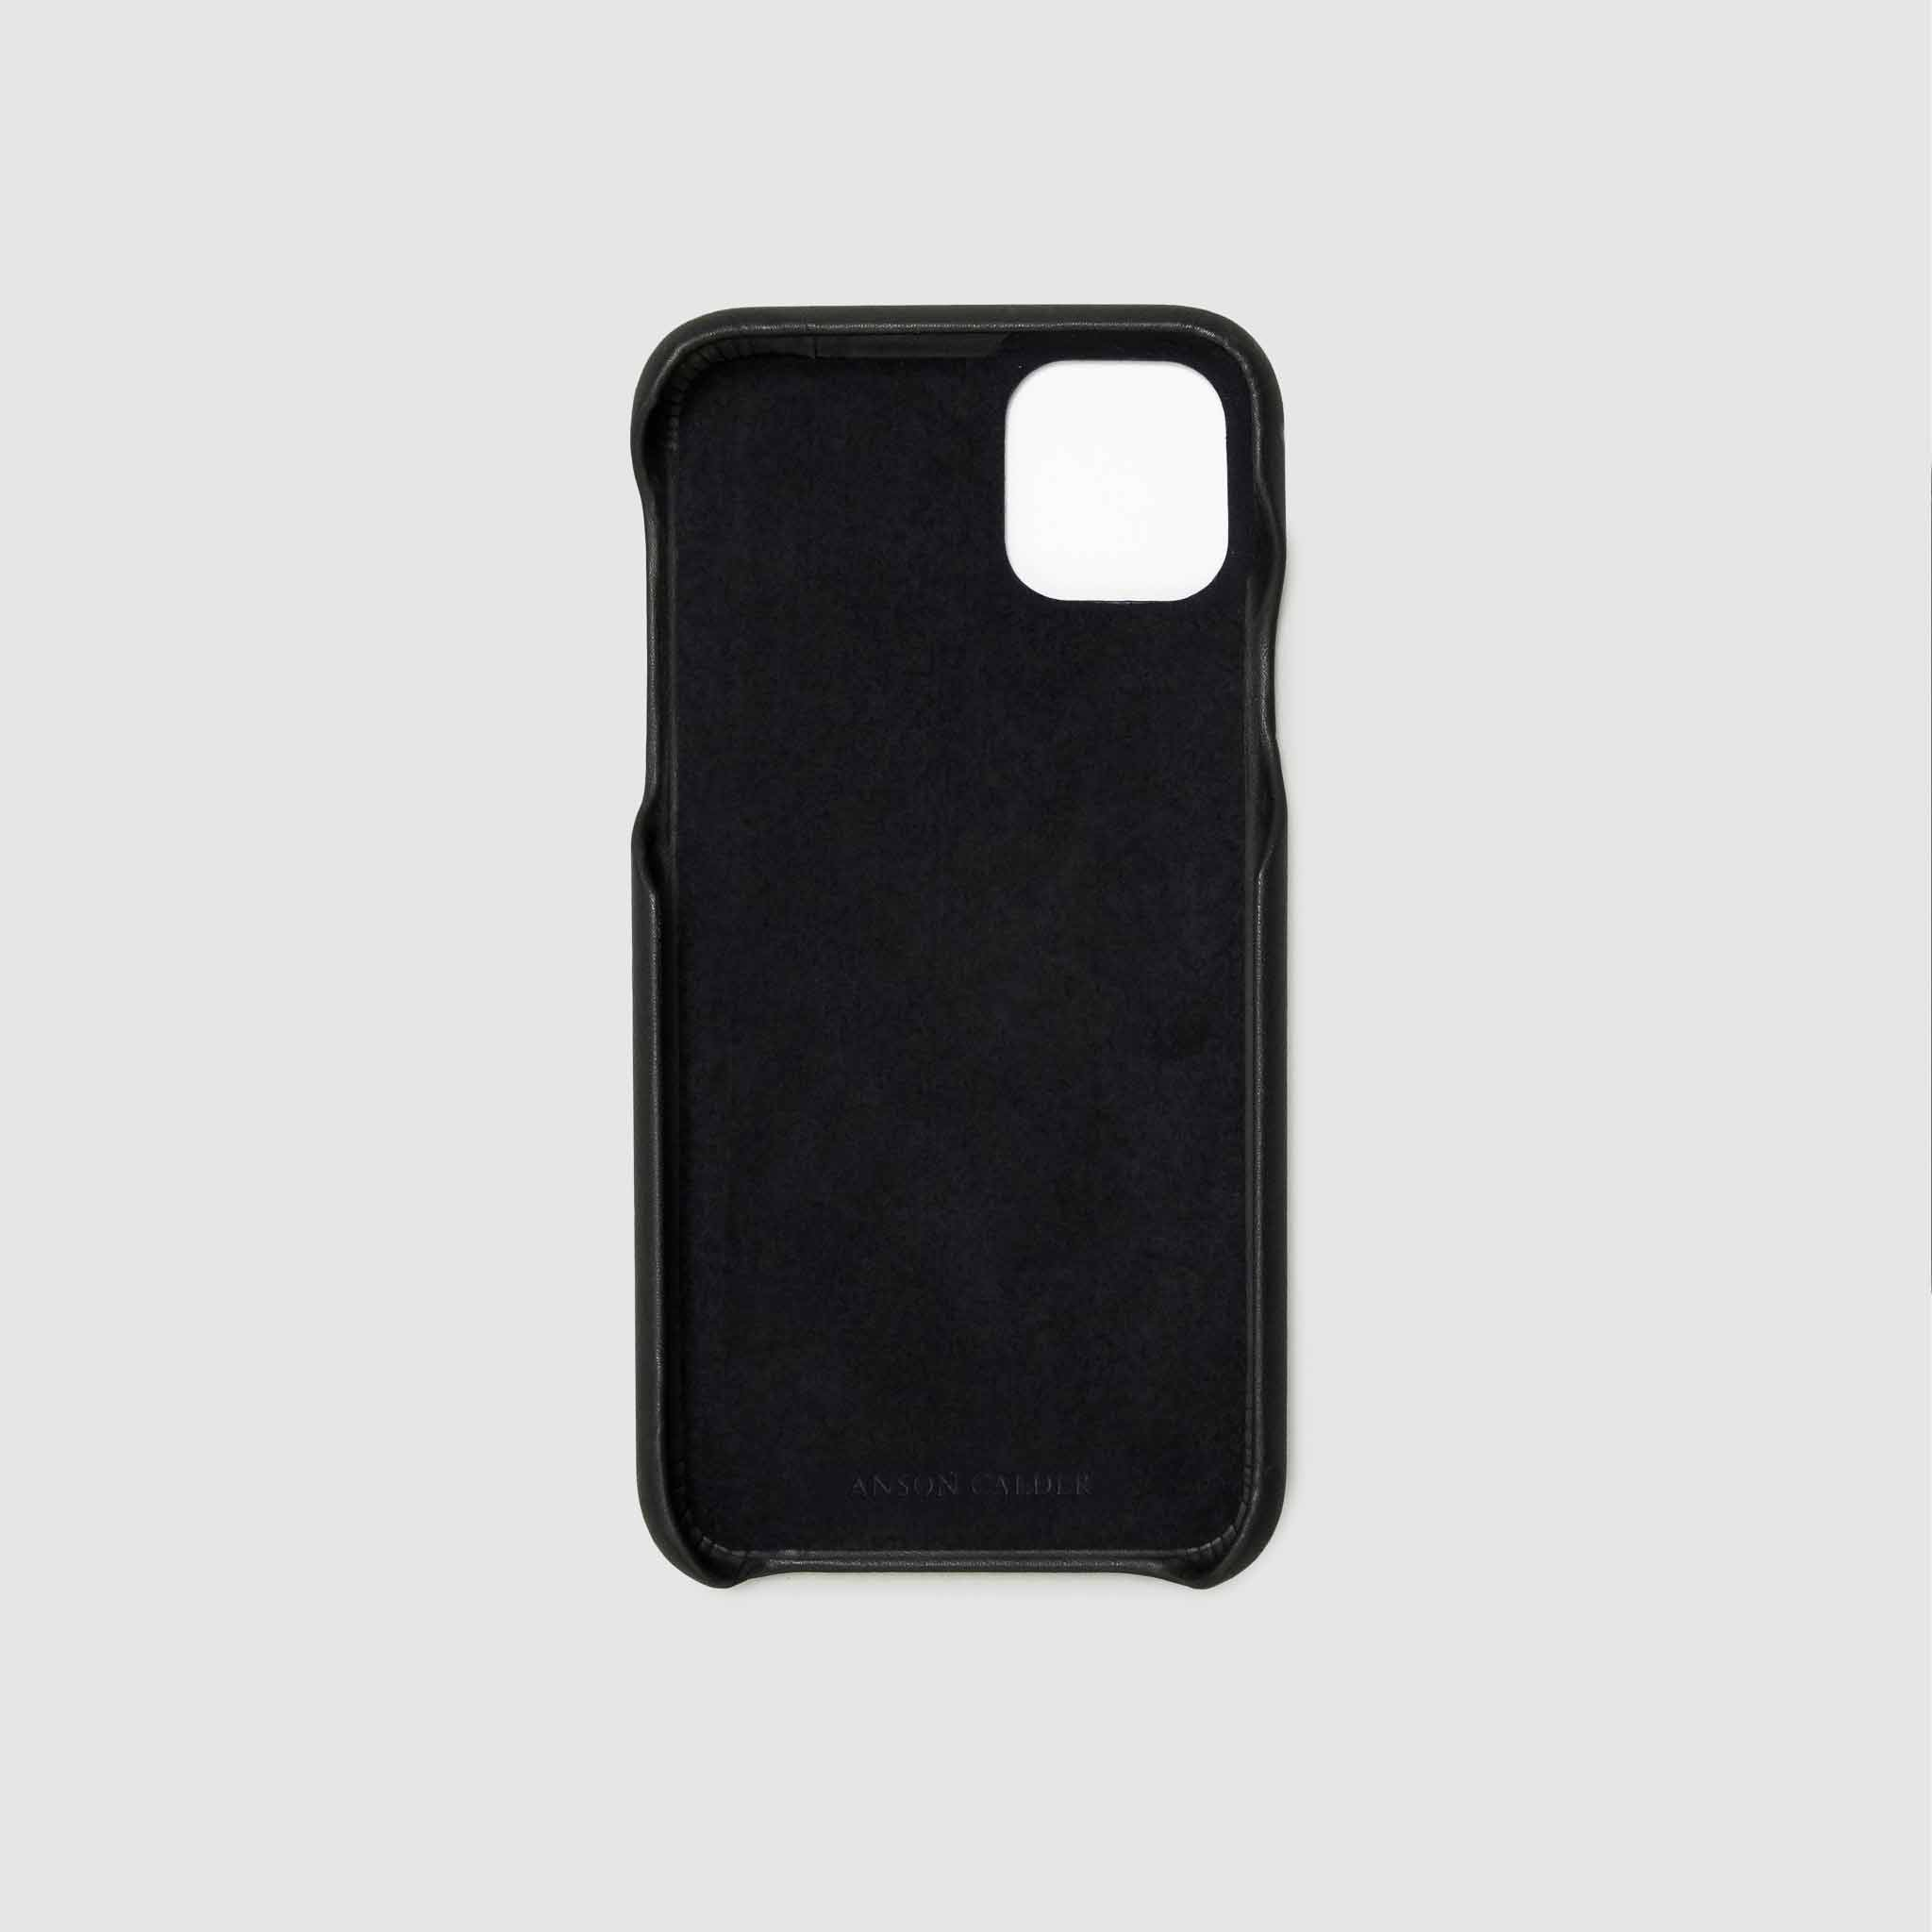 anson calder iphone case french calfskin 11 eleven pro max leather !iphone11pro-iphone11promax  _black